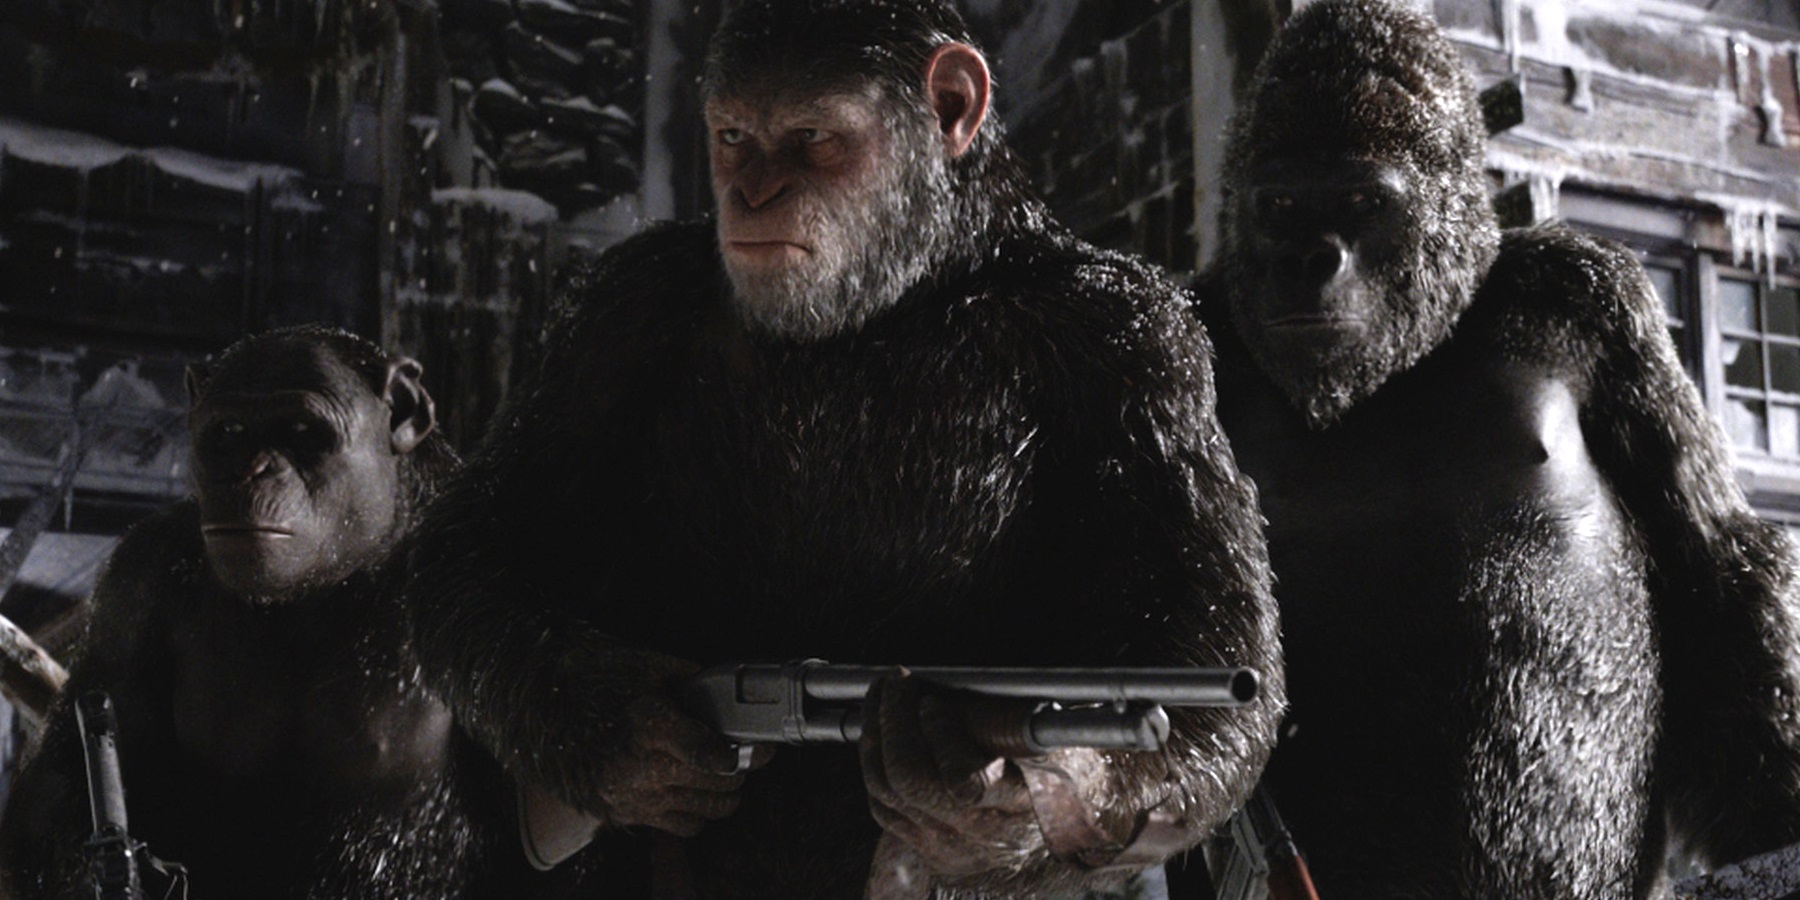 War for the Planet of the Apes - Caesar holding a gun